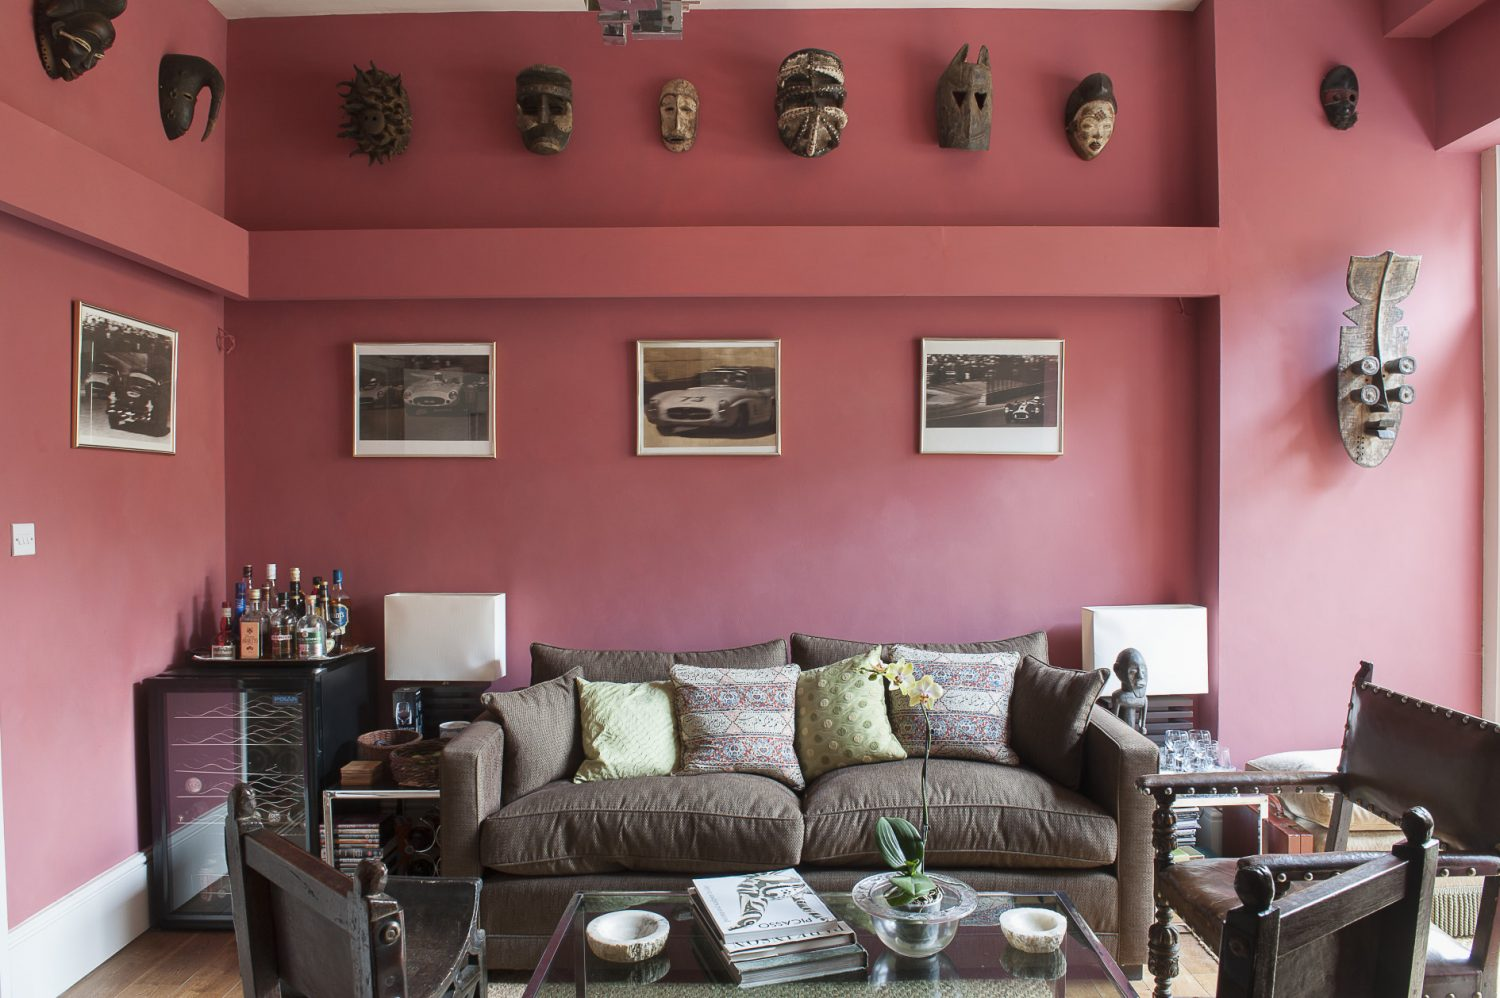 The rear reception room has been painted a deep, warm red, and is lit by a wonderful Italian chandelier. Wall lighting subtly illuminates the amazing tribal masks around the room that stare down from on high